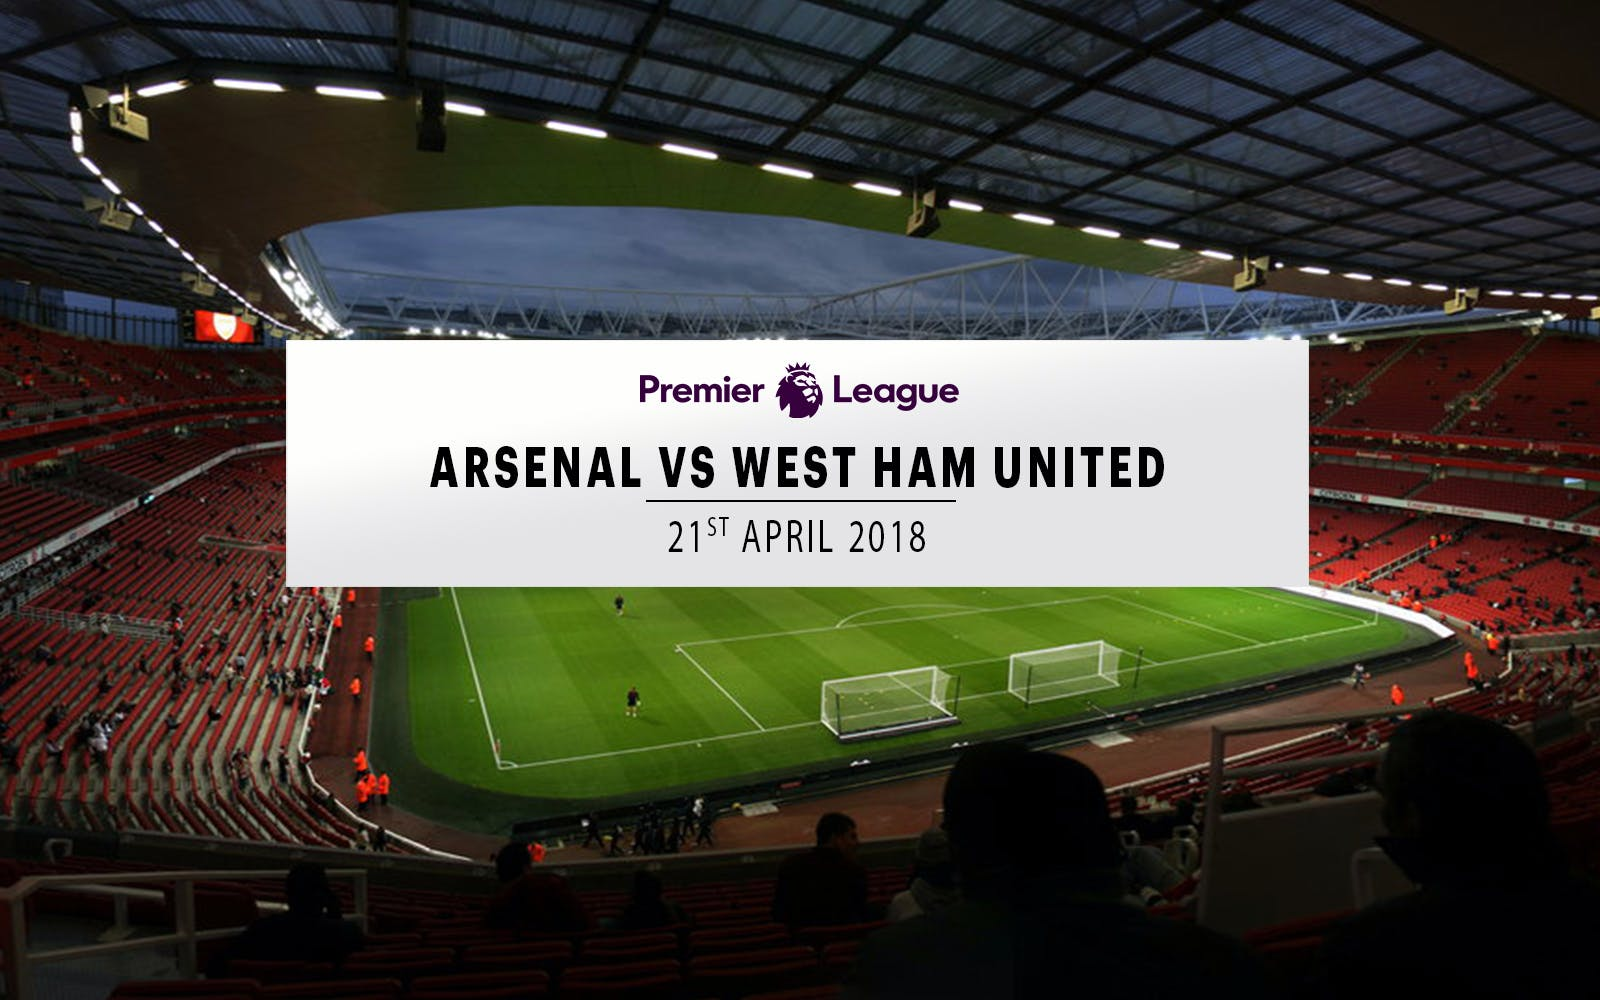 arsenal vs west ham united - 21st april 2018 -1